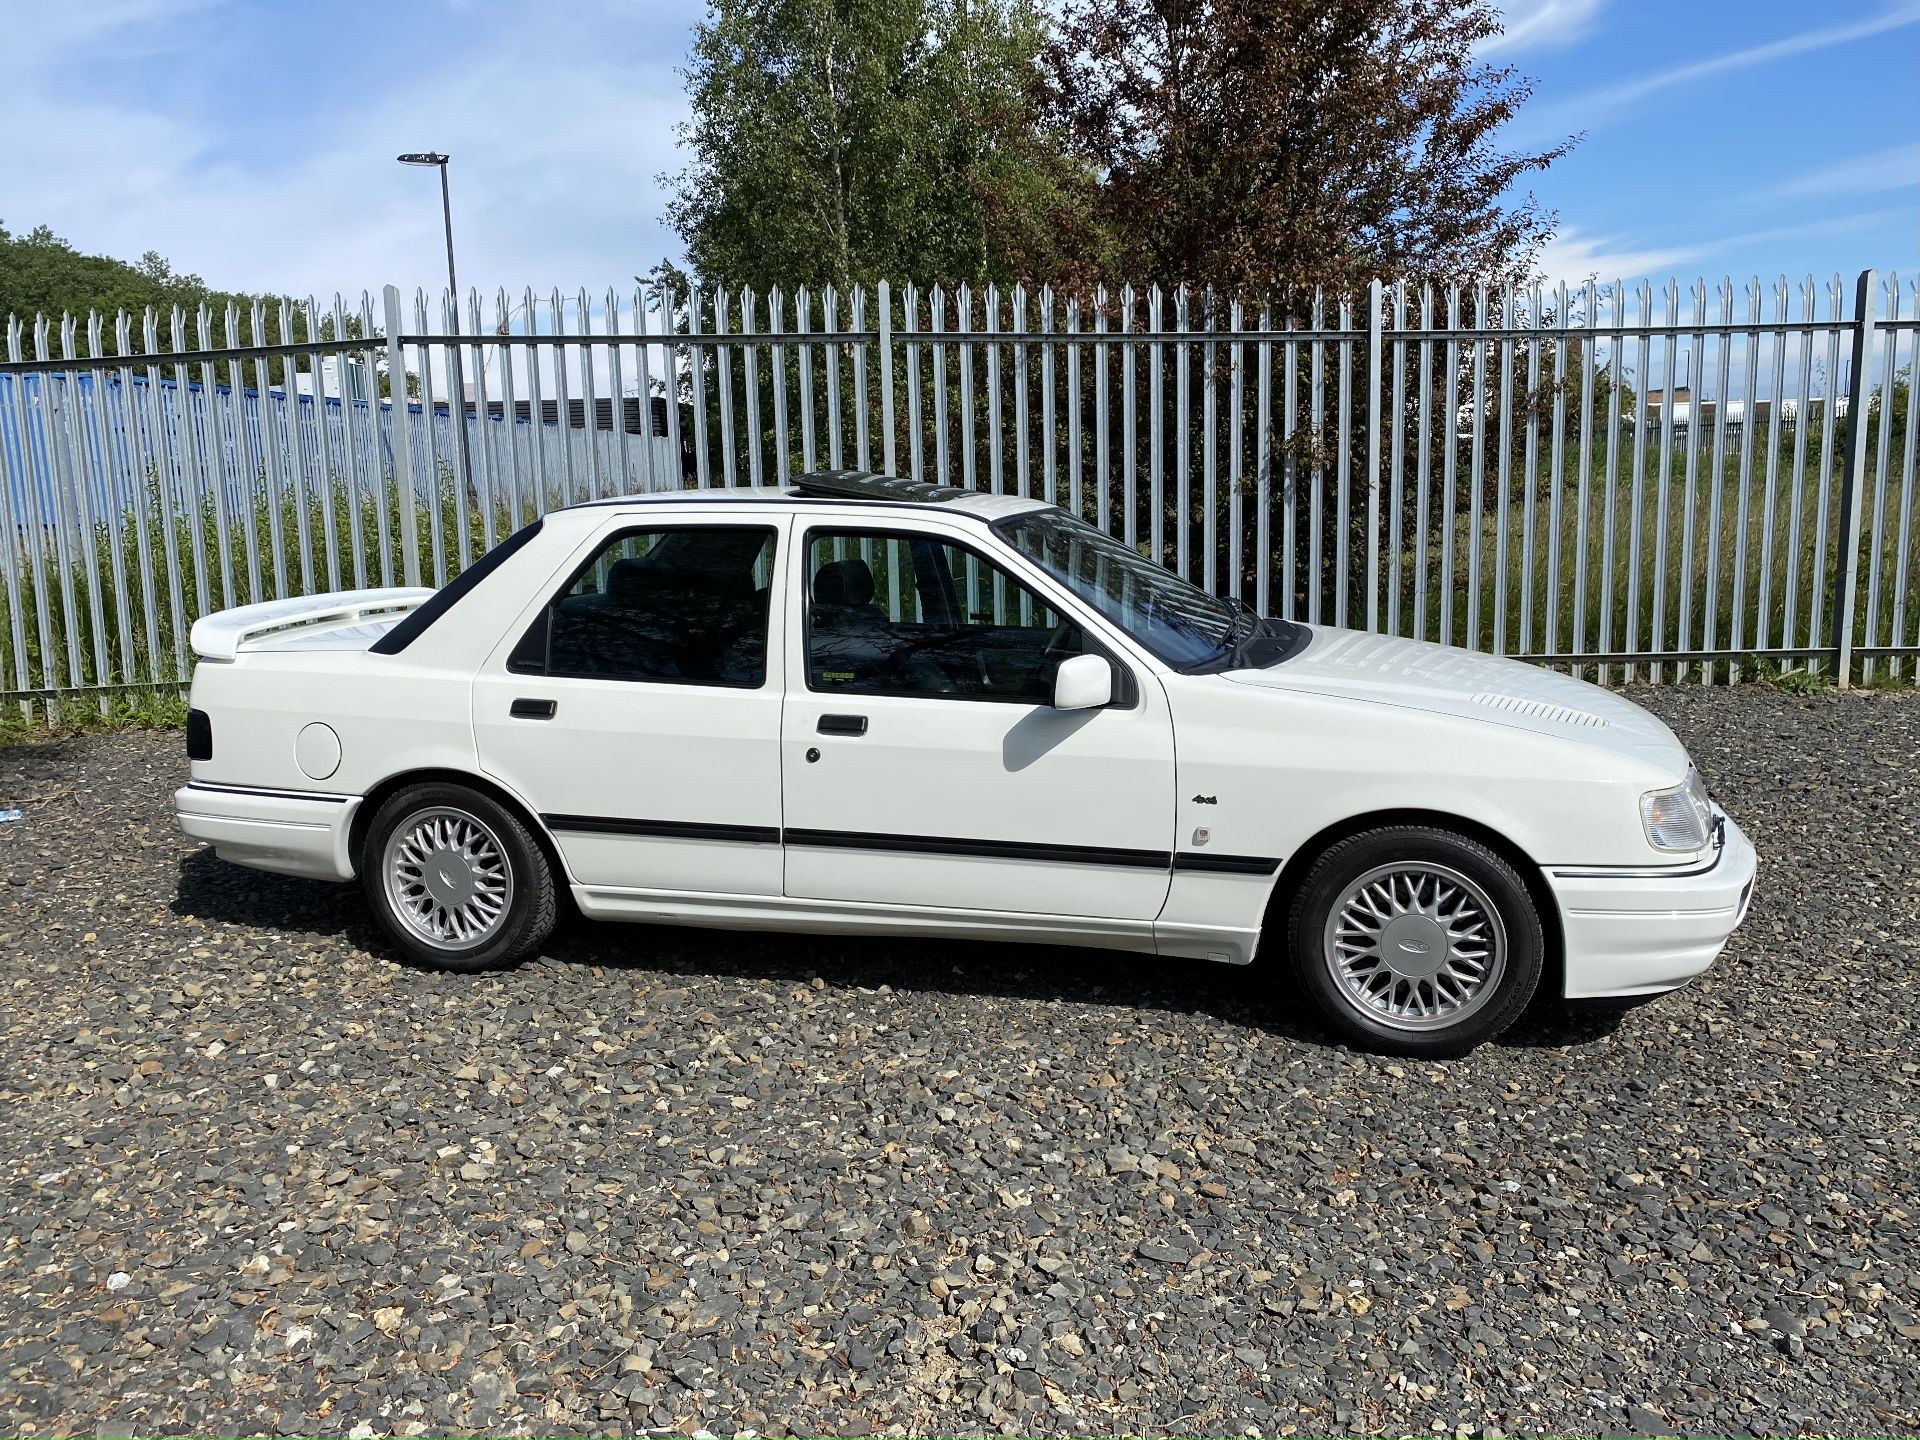 Ford Sierra Sapphire Cosworth 4x4 - Image 3 of 55